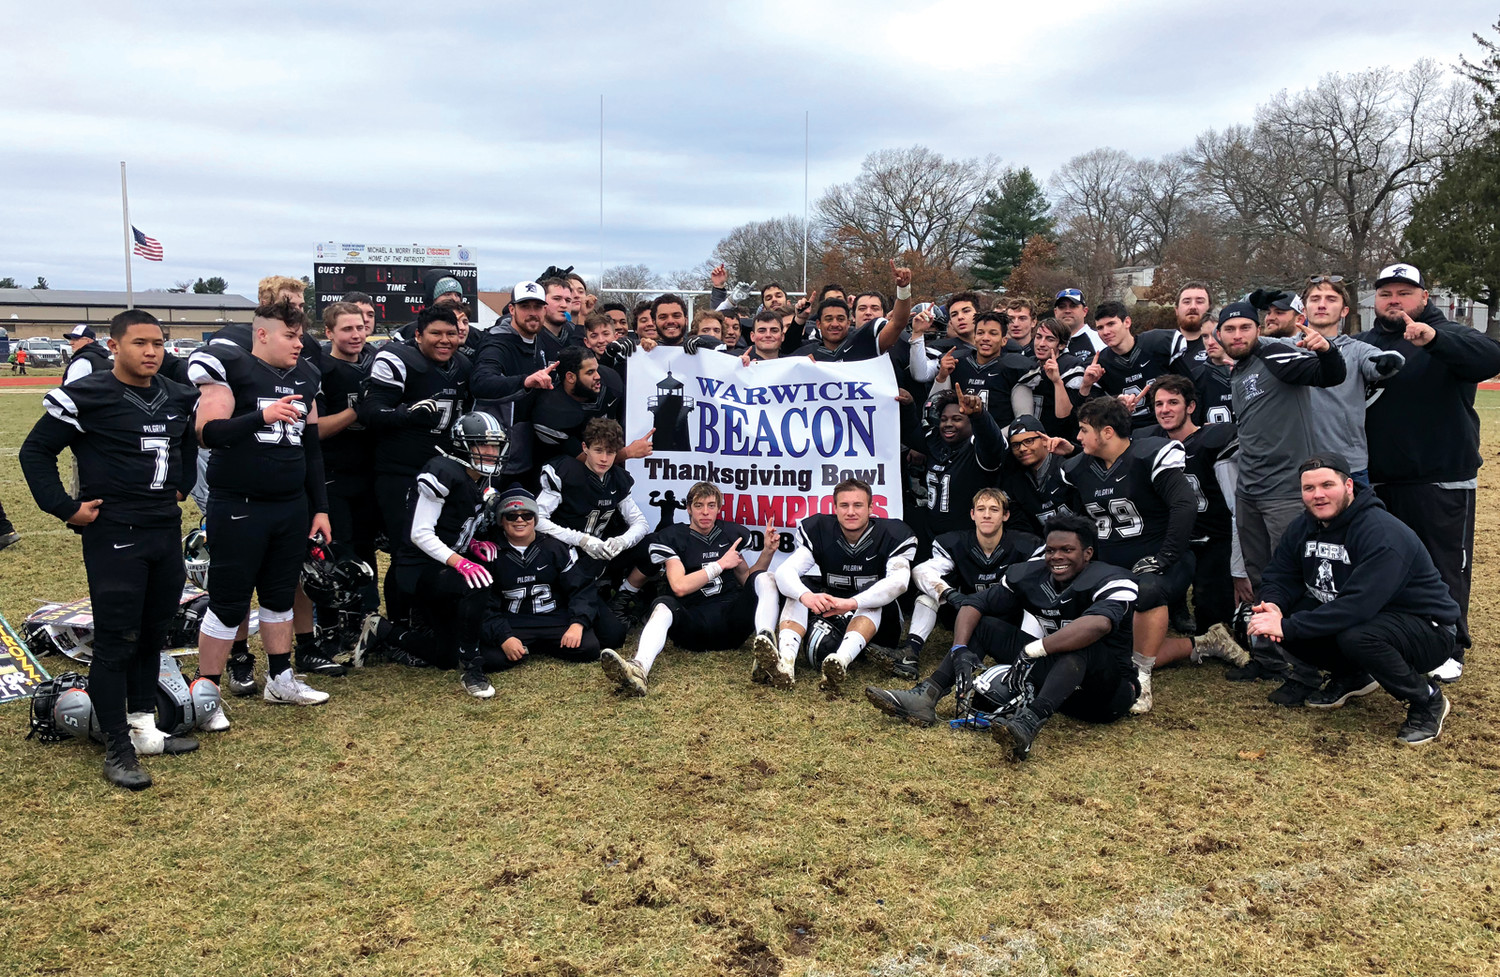 THIRD TIME'S A CHARM: The Pilgrim football team after capturing its first Warwick Beacon Bowl win.